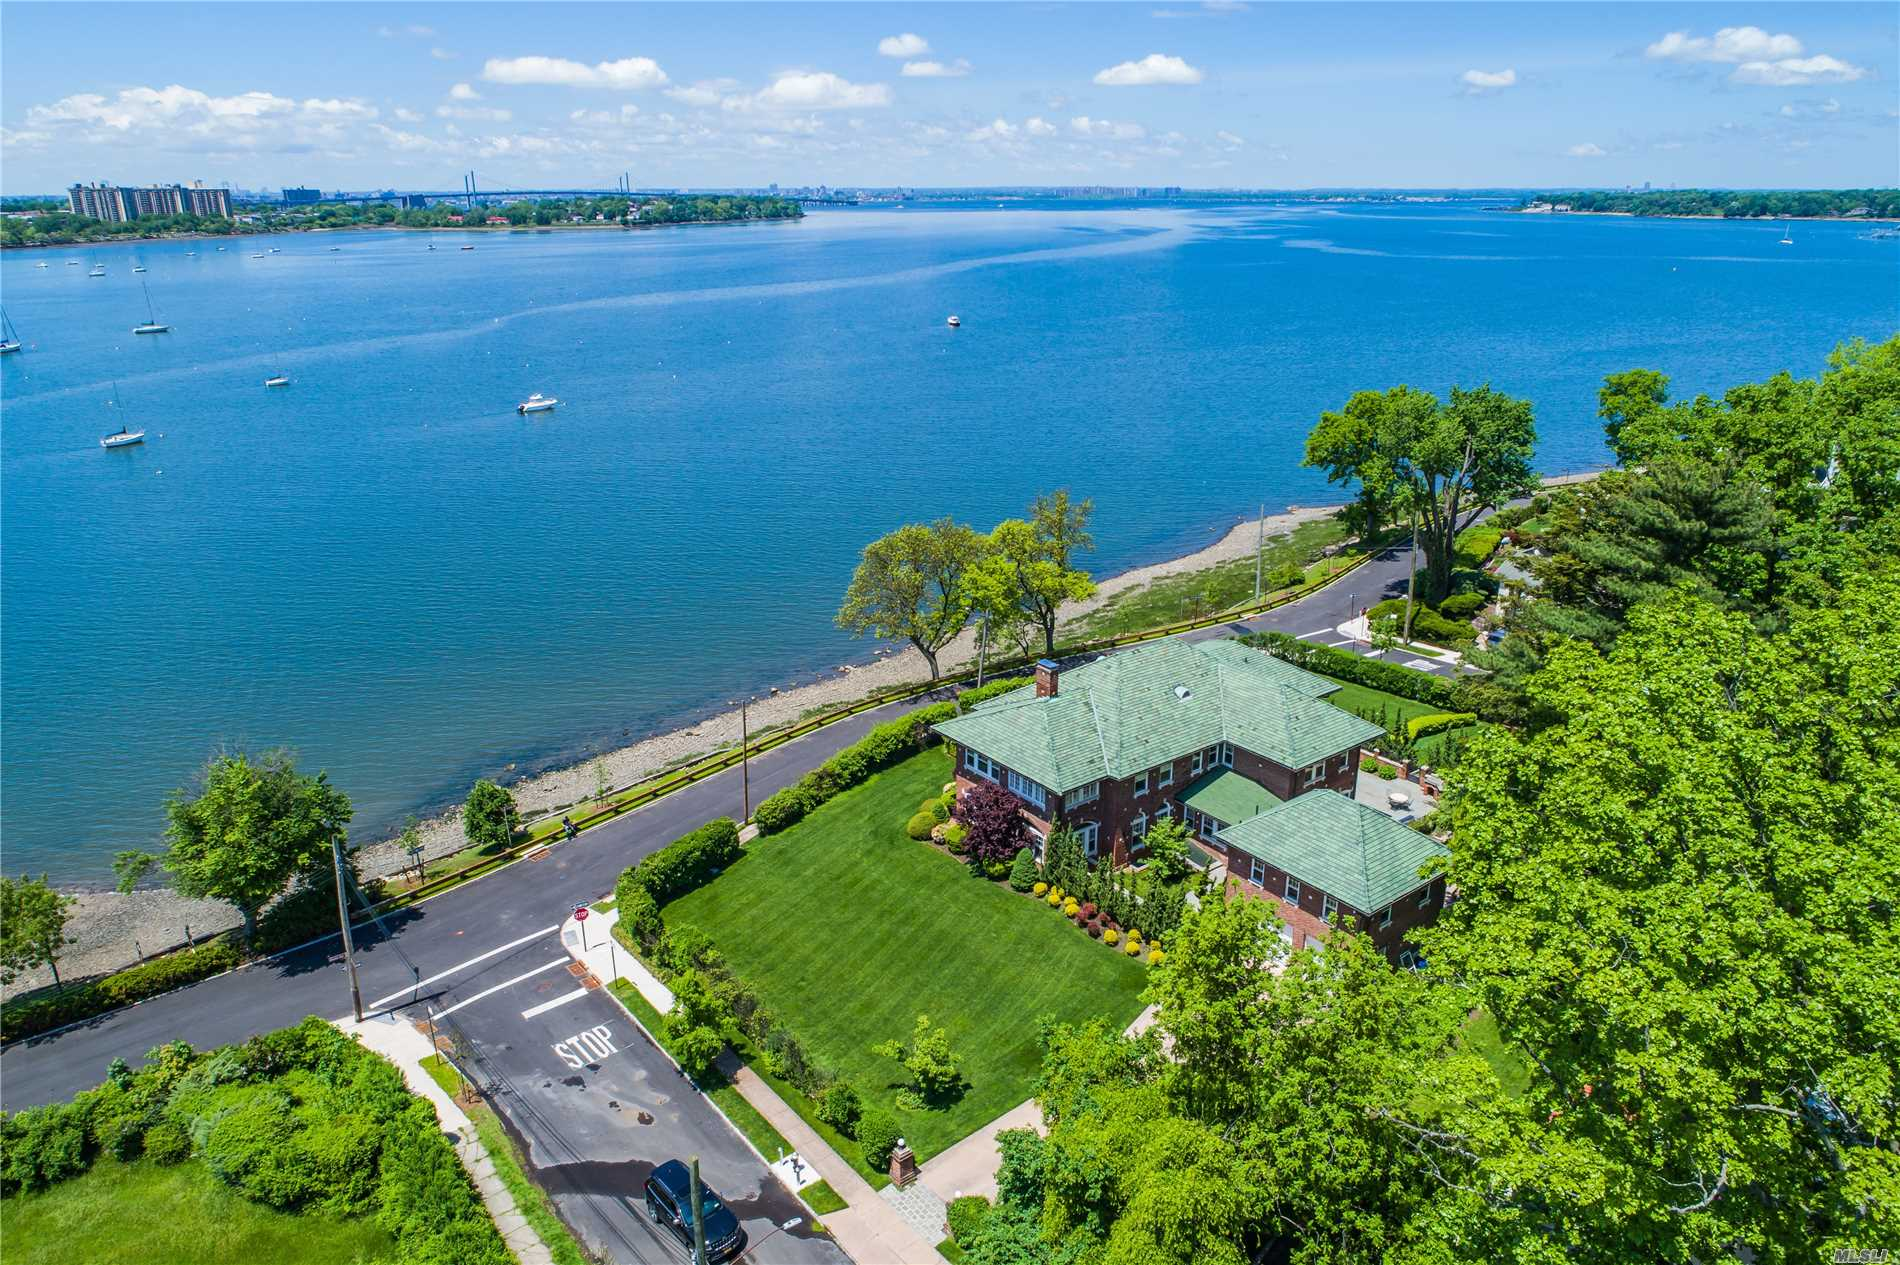 """Shoreview Manor"" Evokes A Sense Of Grandeur At Every Turn.  Steeped Rich In History, This Elegant 6 Bedroom Waterfront Estate Offers All The Modern Day Amenities For Today's Lifestyle Coupled With Original Features, Like 10Ft Ceilings, Gracious Principal Rooms, Panoramic Water Views & Architectural Artistry That Make This Residence A Unique Treasure Amidst The Long Island Sound."